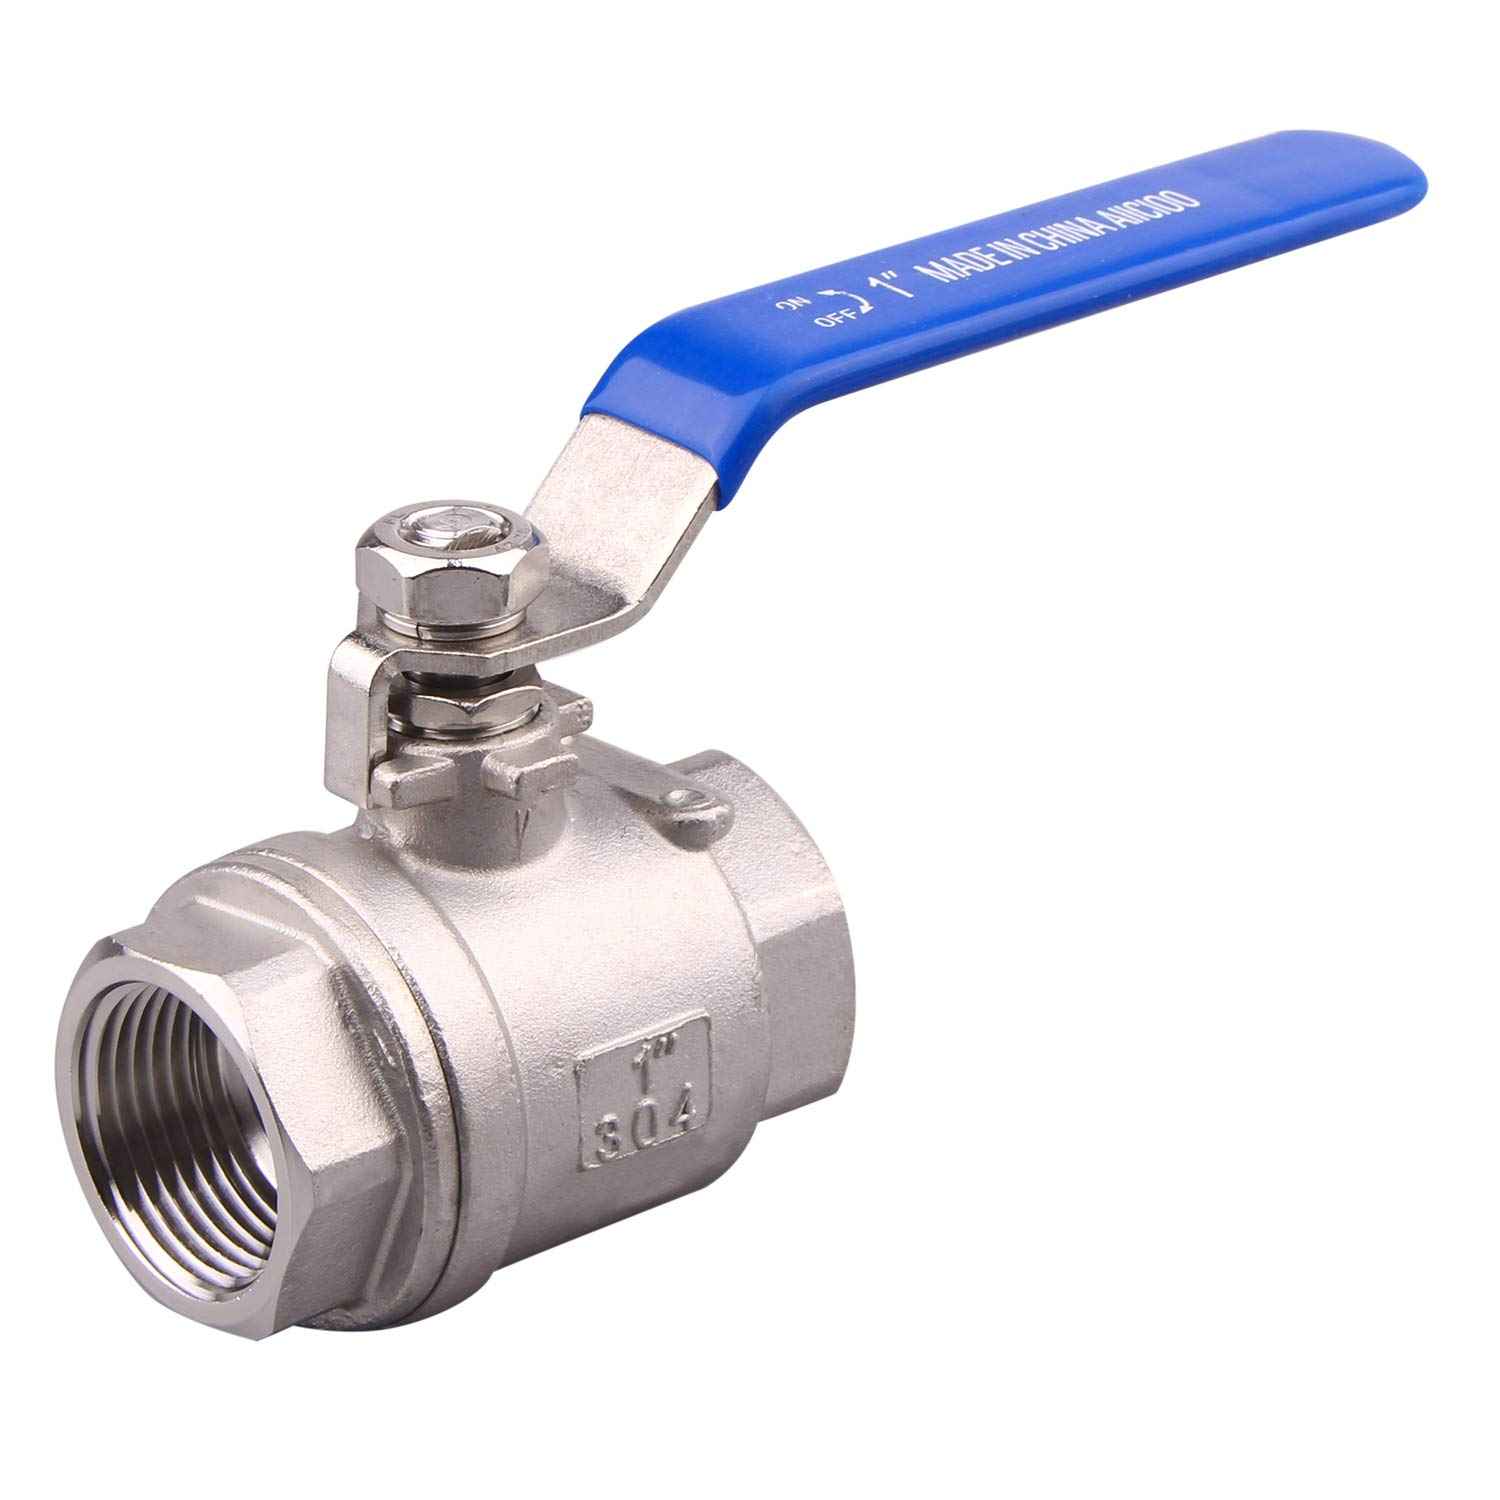 AIICIOO Full Port Ball Valve 2PC New products world's highest quality popular Stainless Female Off Shut Popular products Steel